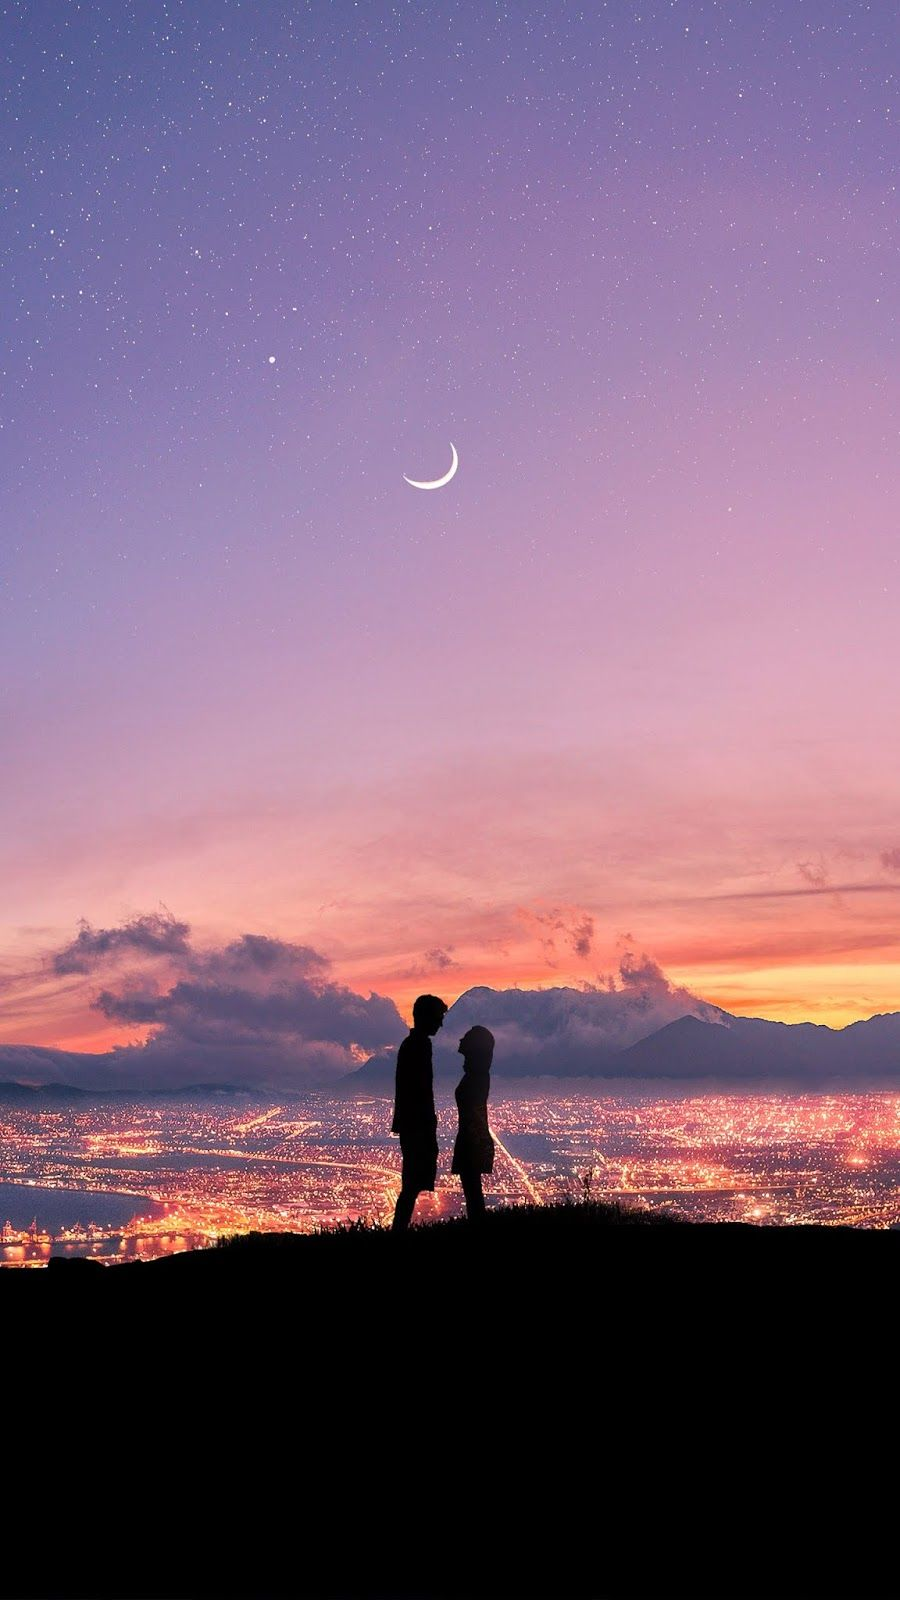 Lonely Together Wallpaper Iphone Android Background Followme Scenery Wallpaper Cute Wallpaper Backgrounds Anime Scenery